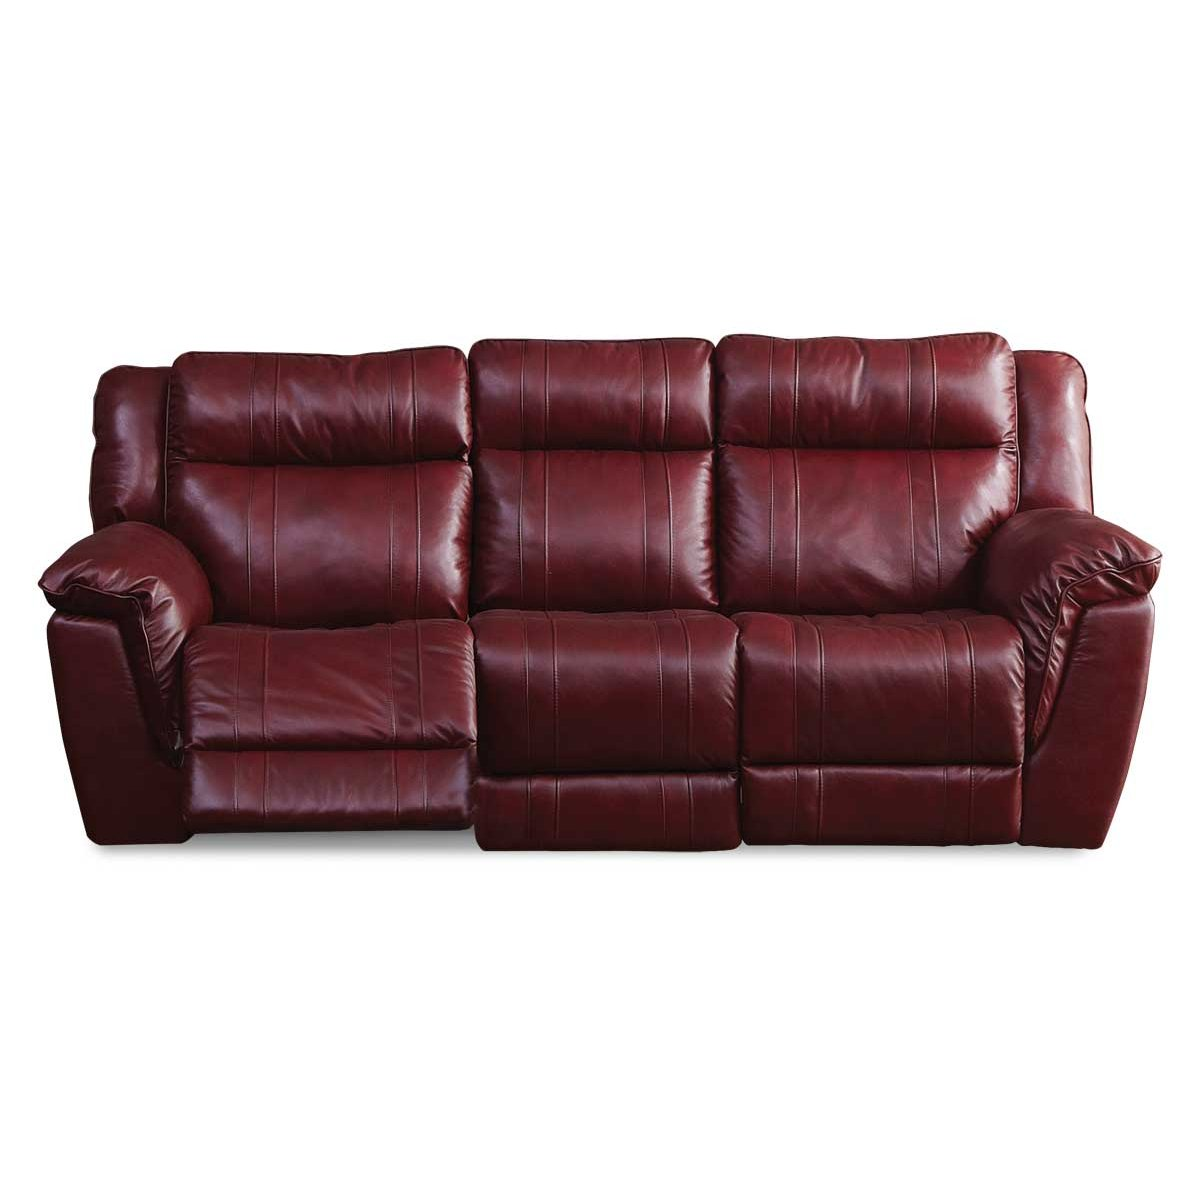 Red Leather-Match Dual Manual Reclining Sofa - K-Motion | RC Willey ...